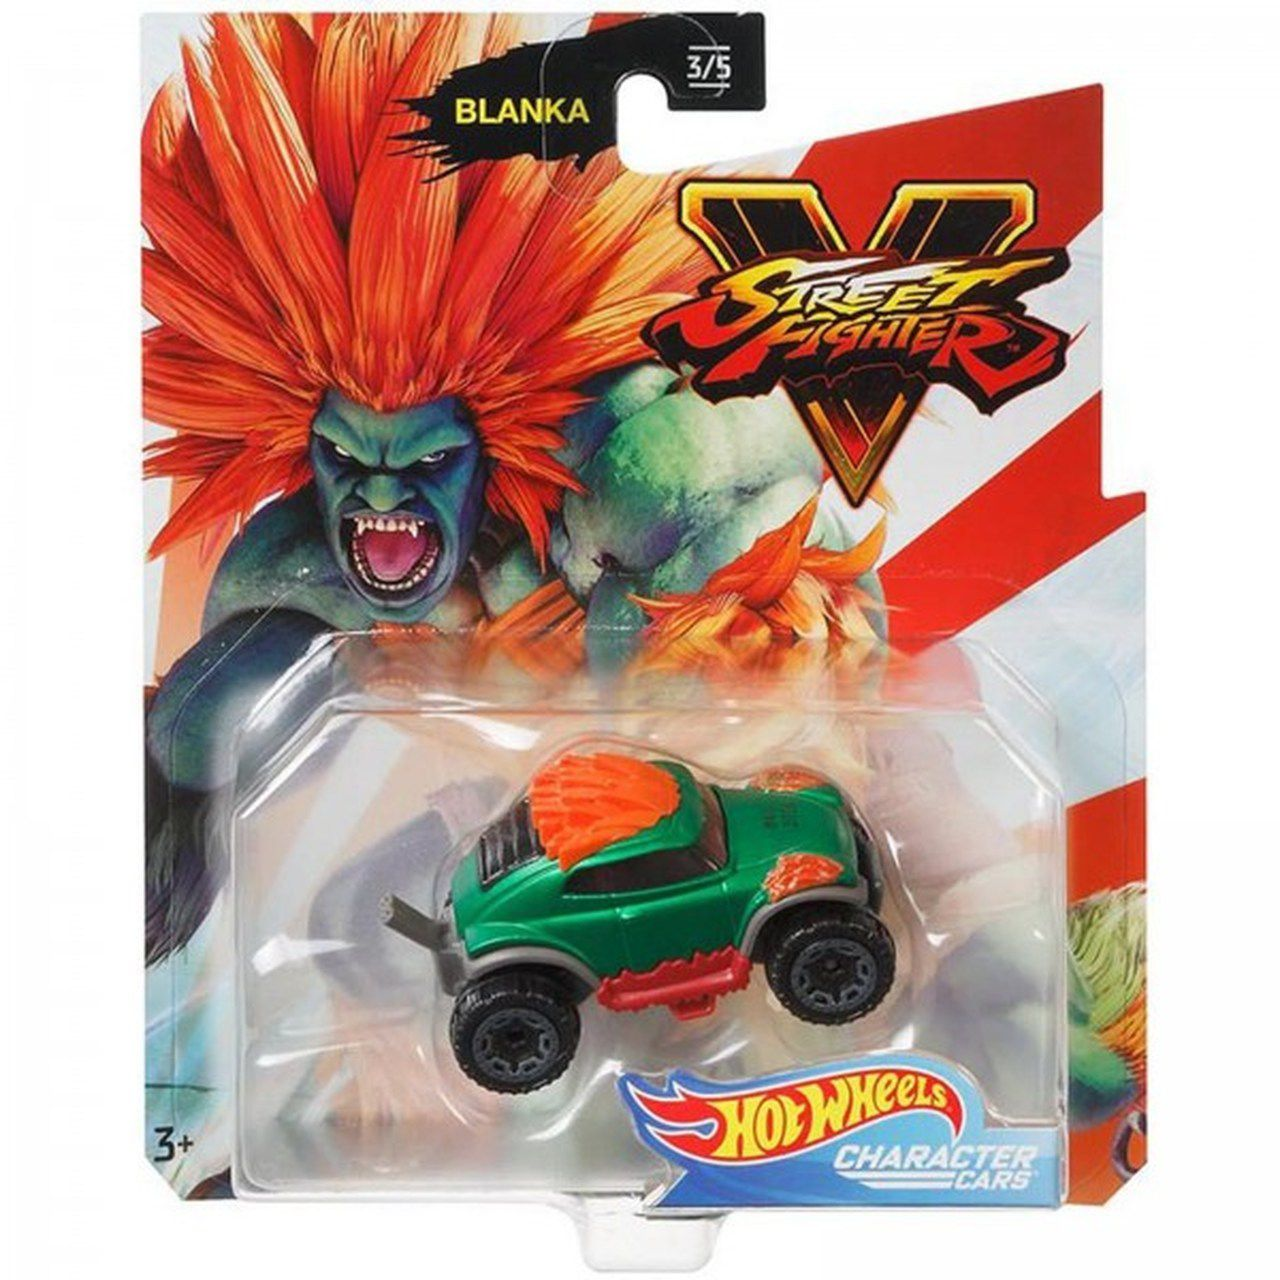 Carrinho Blanka: Street Fighter V - Hot Wheels